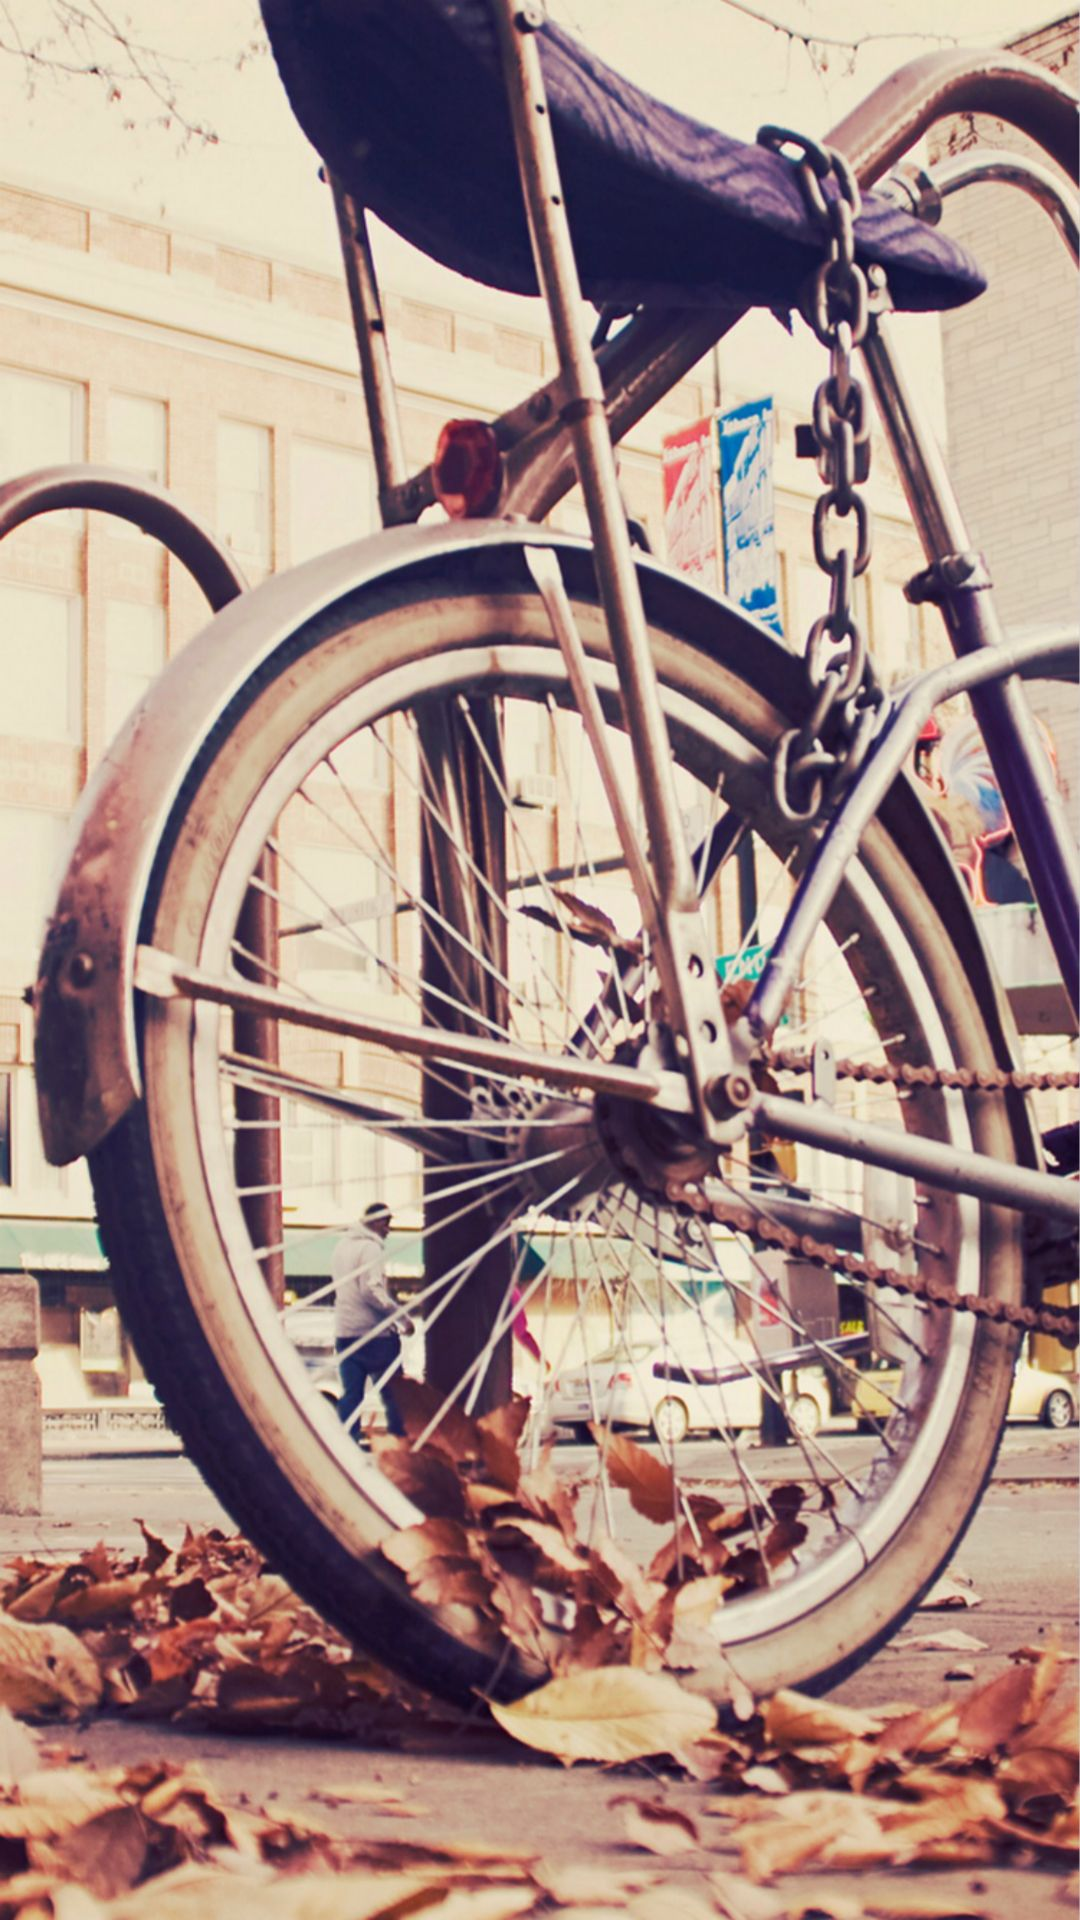 Vintage Hipster Bike Chained iPhone 8 Wallpapers Iphone